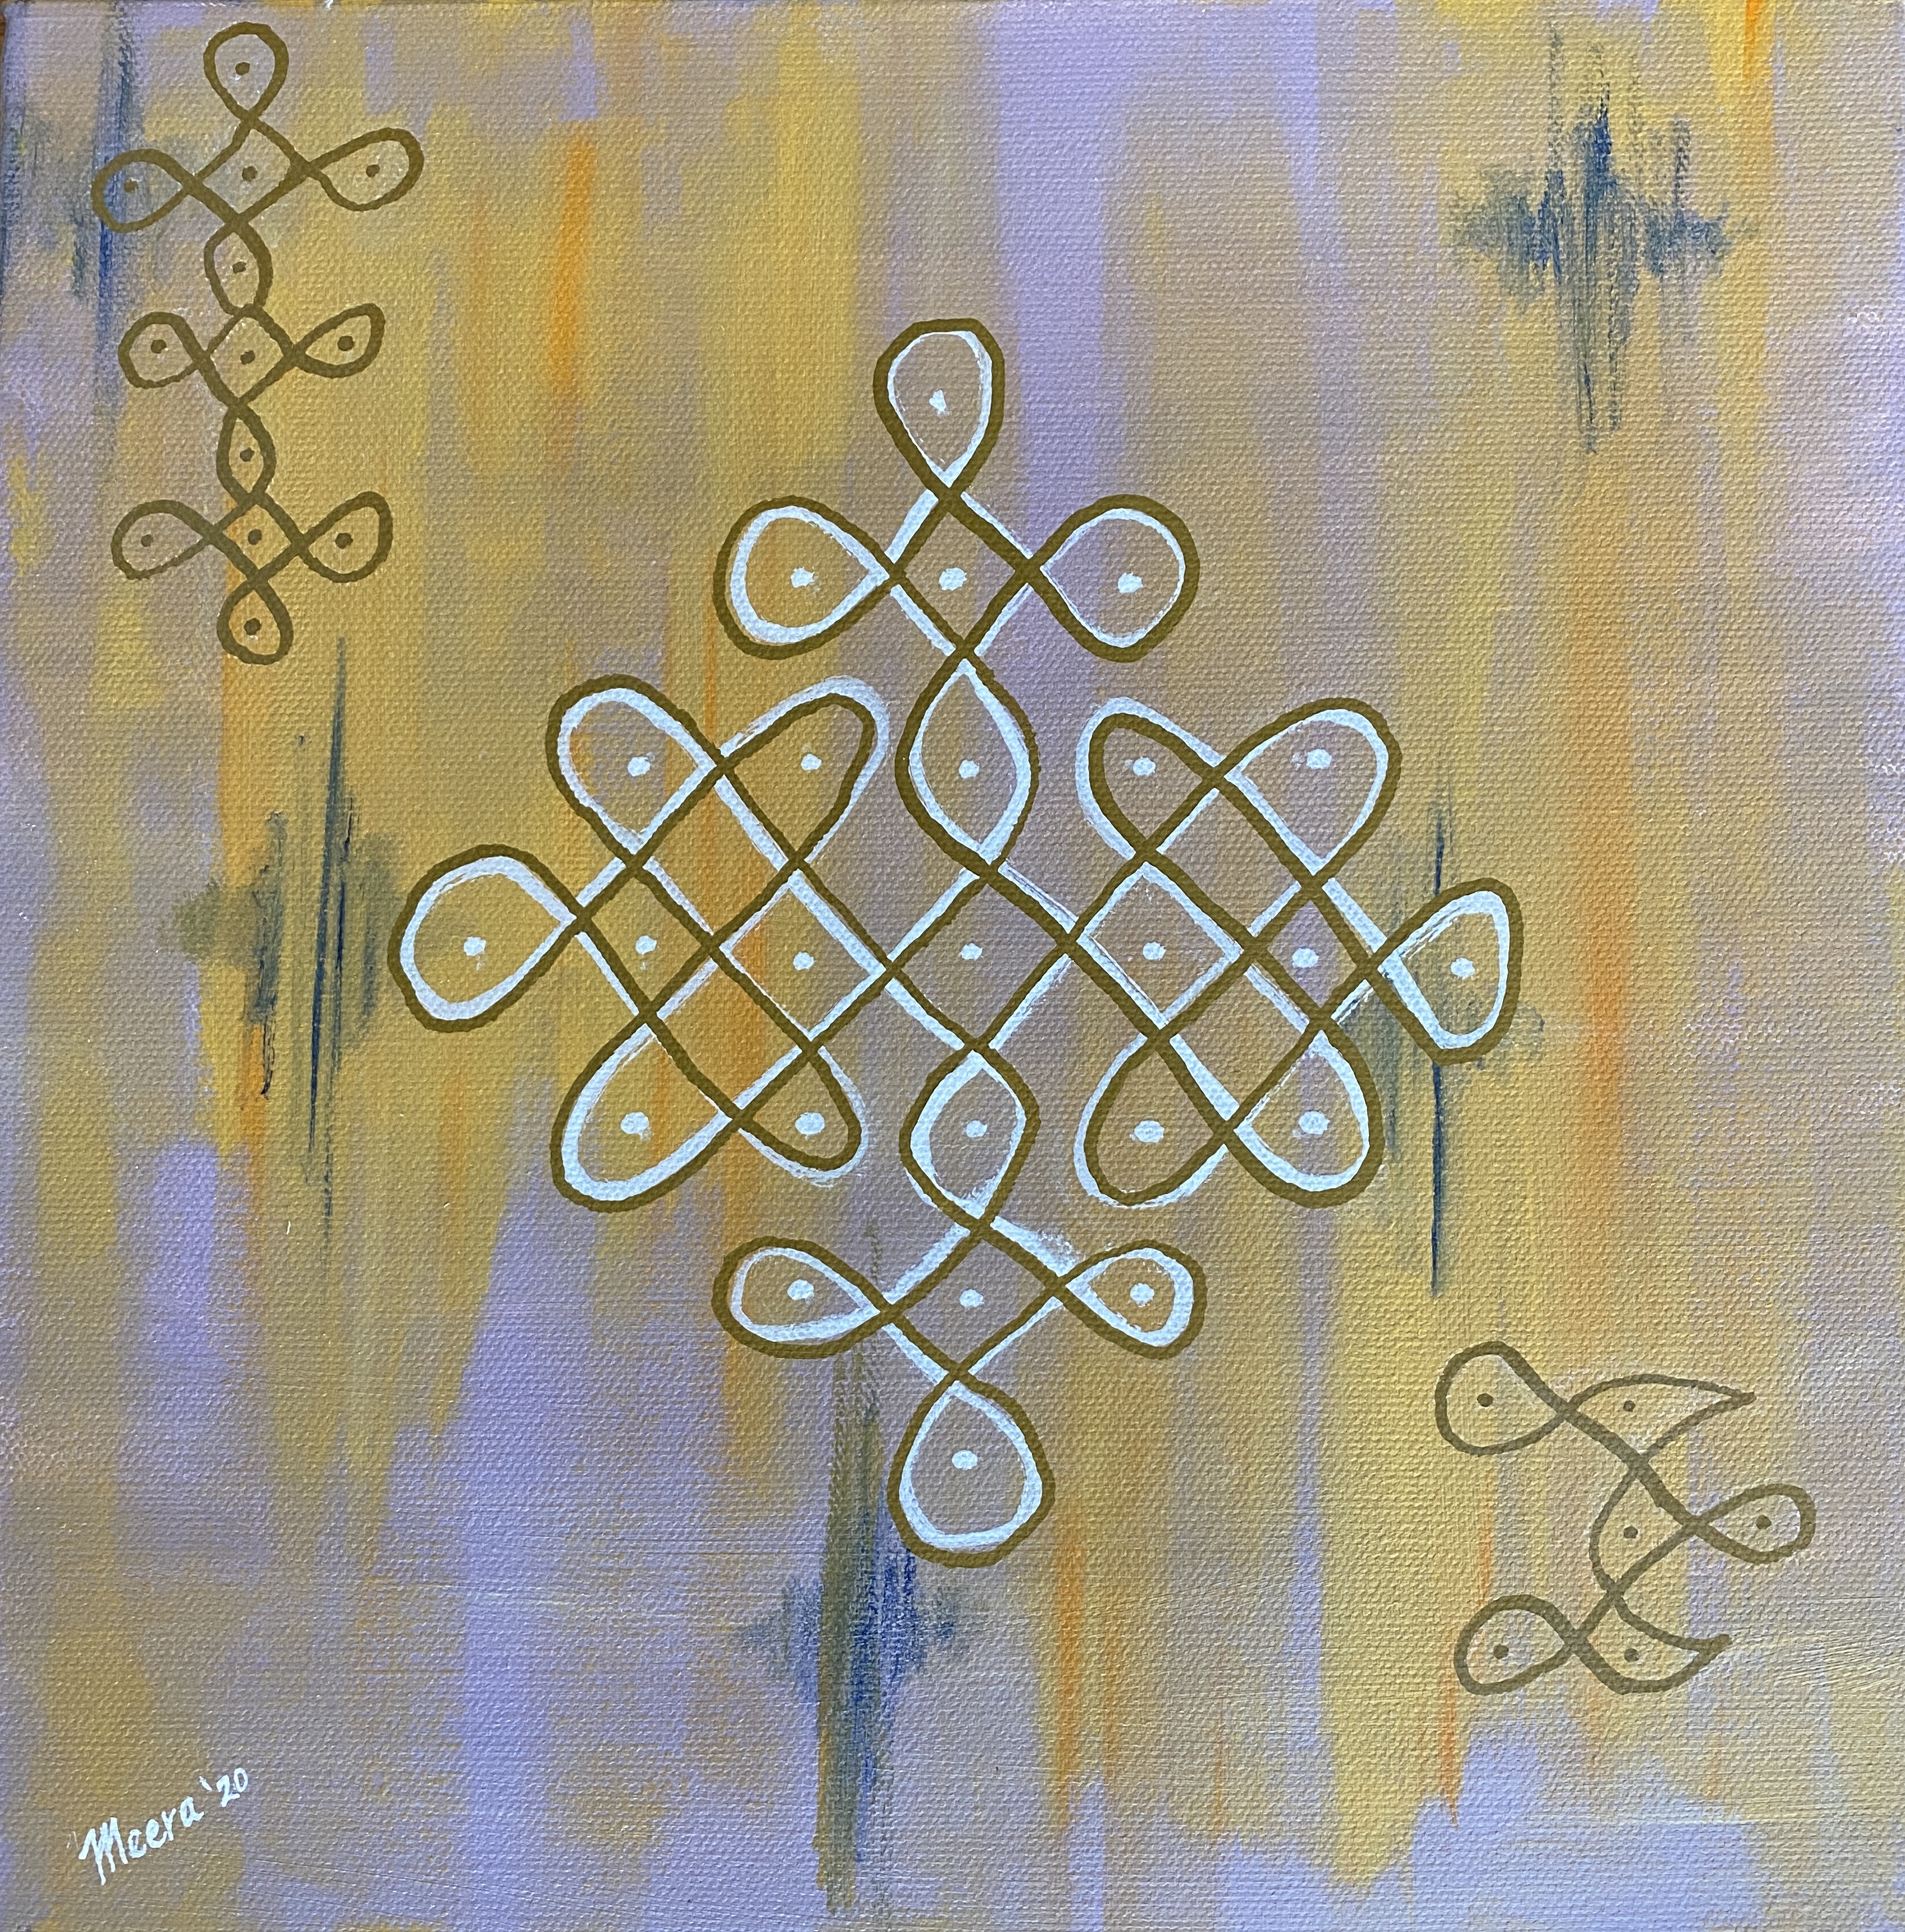 We are all connected (Connections/Kolam Series)